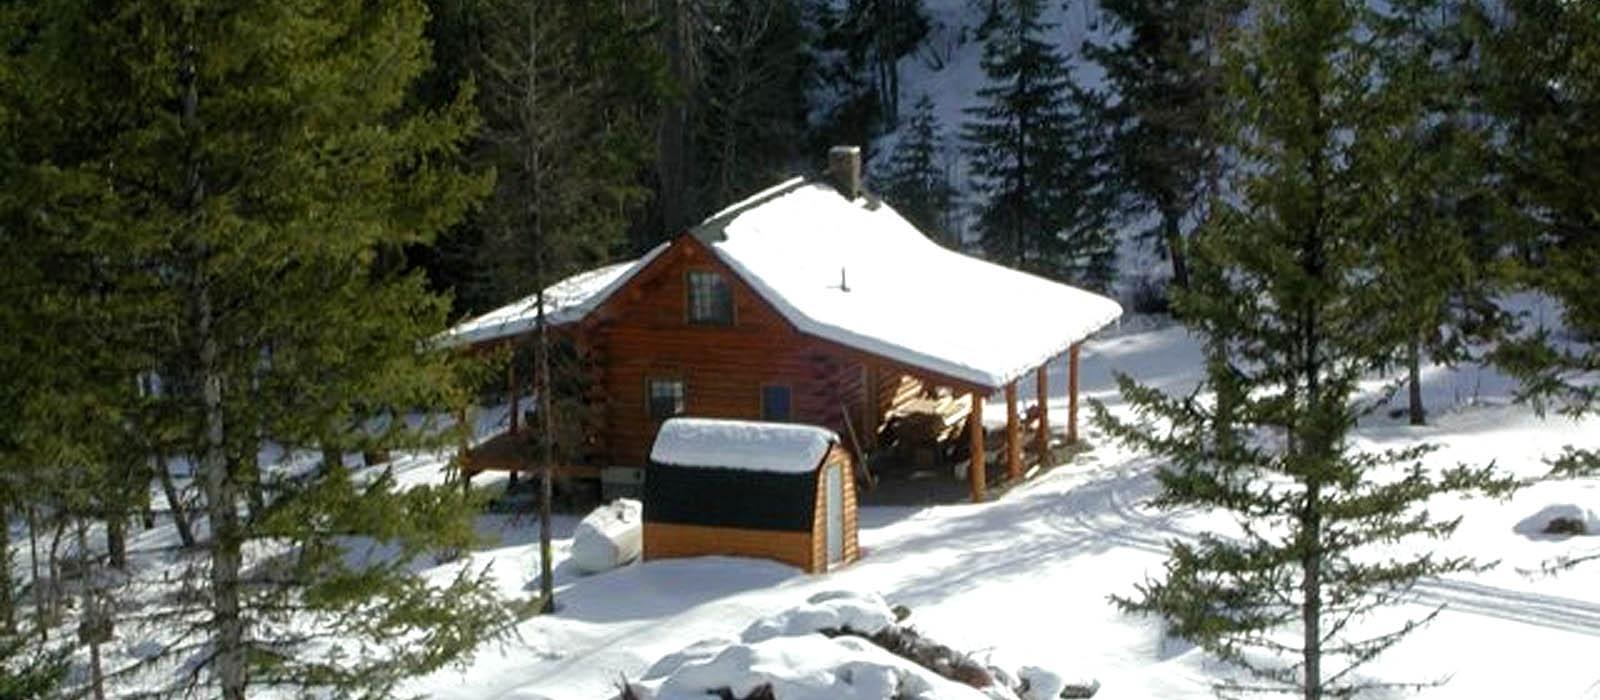 Lost Lake Cabin in the snow, Montana